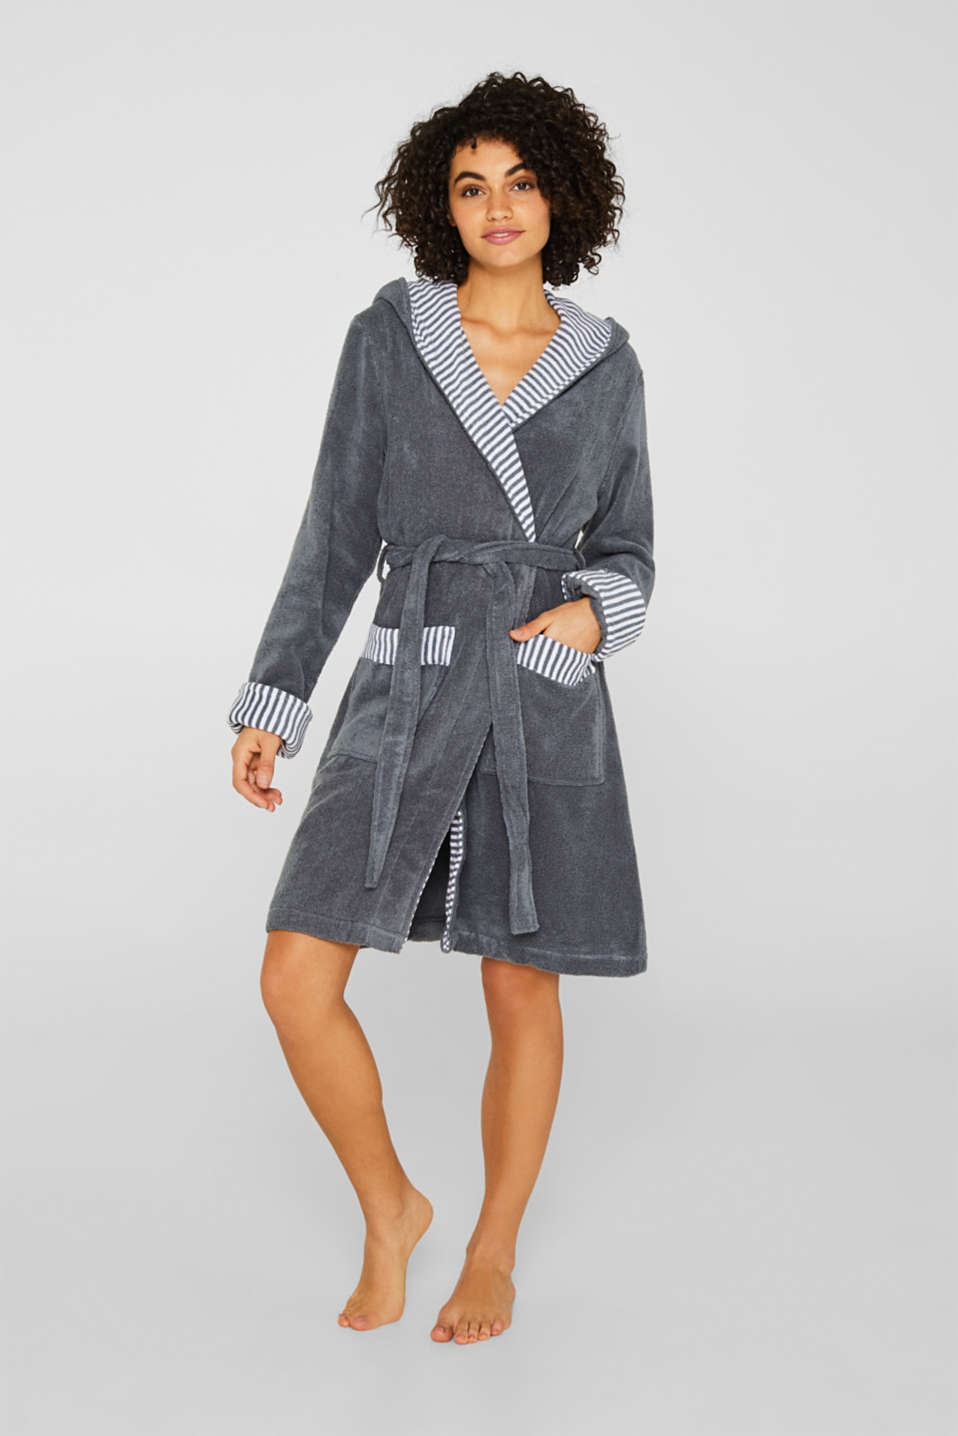 Esprit - Suede bathrobe made of 100% cotton